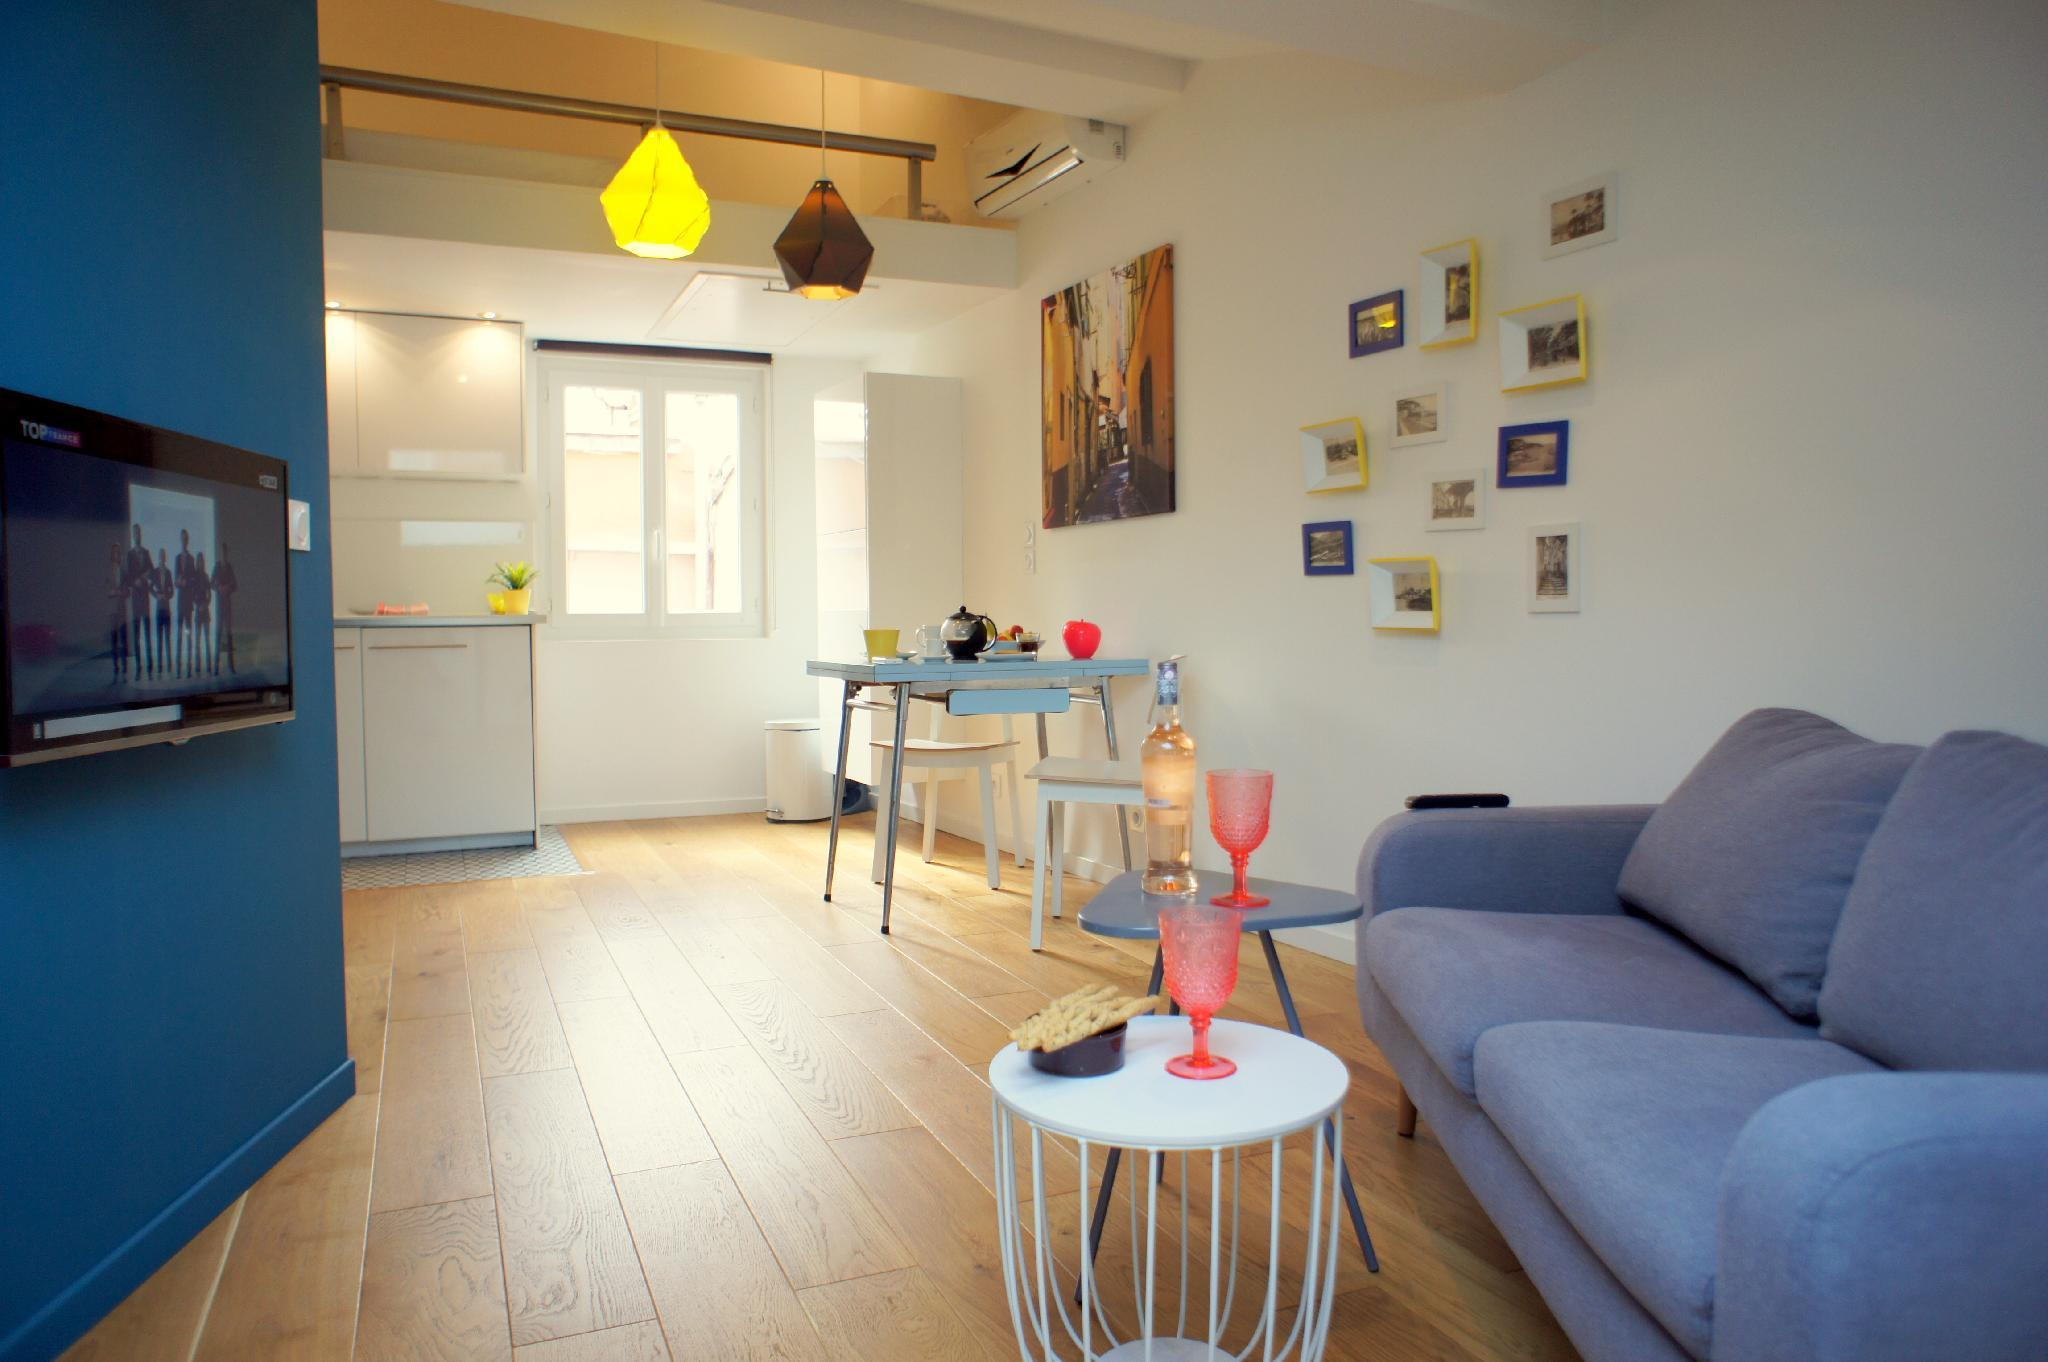 Ze Perfect Place - Old Nice - Smart Studio